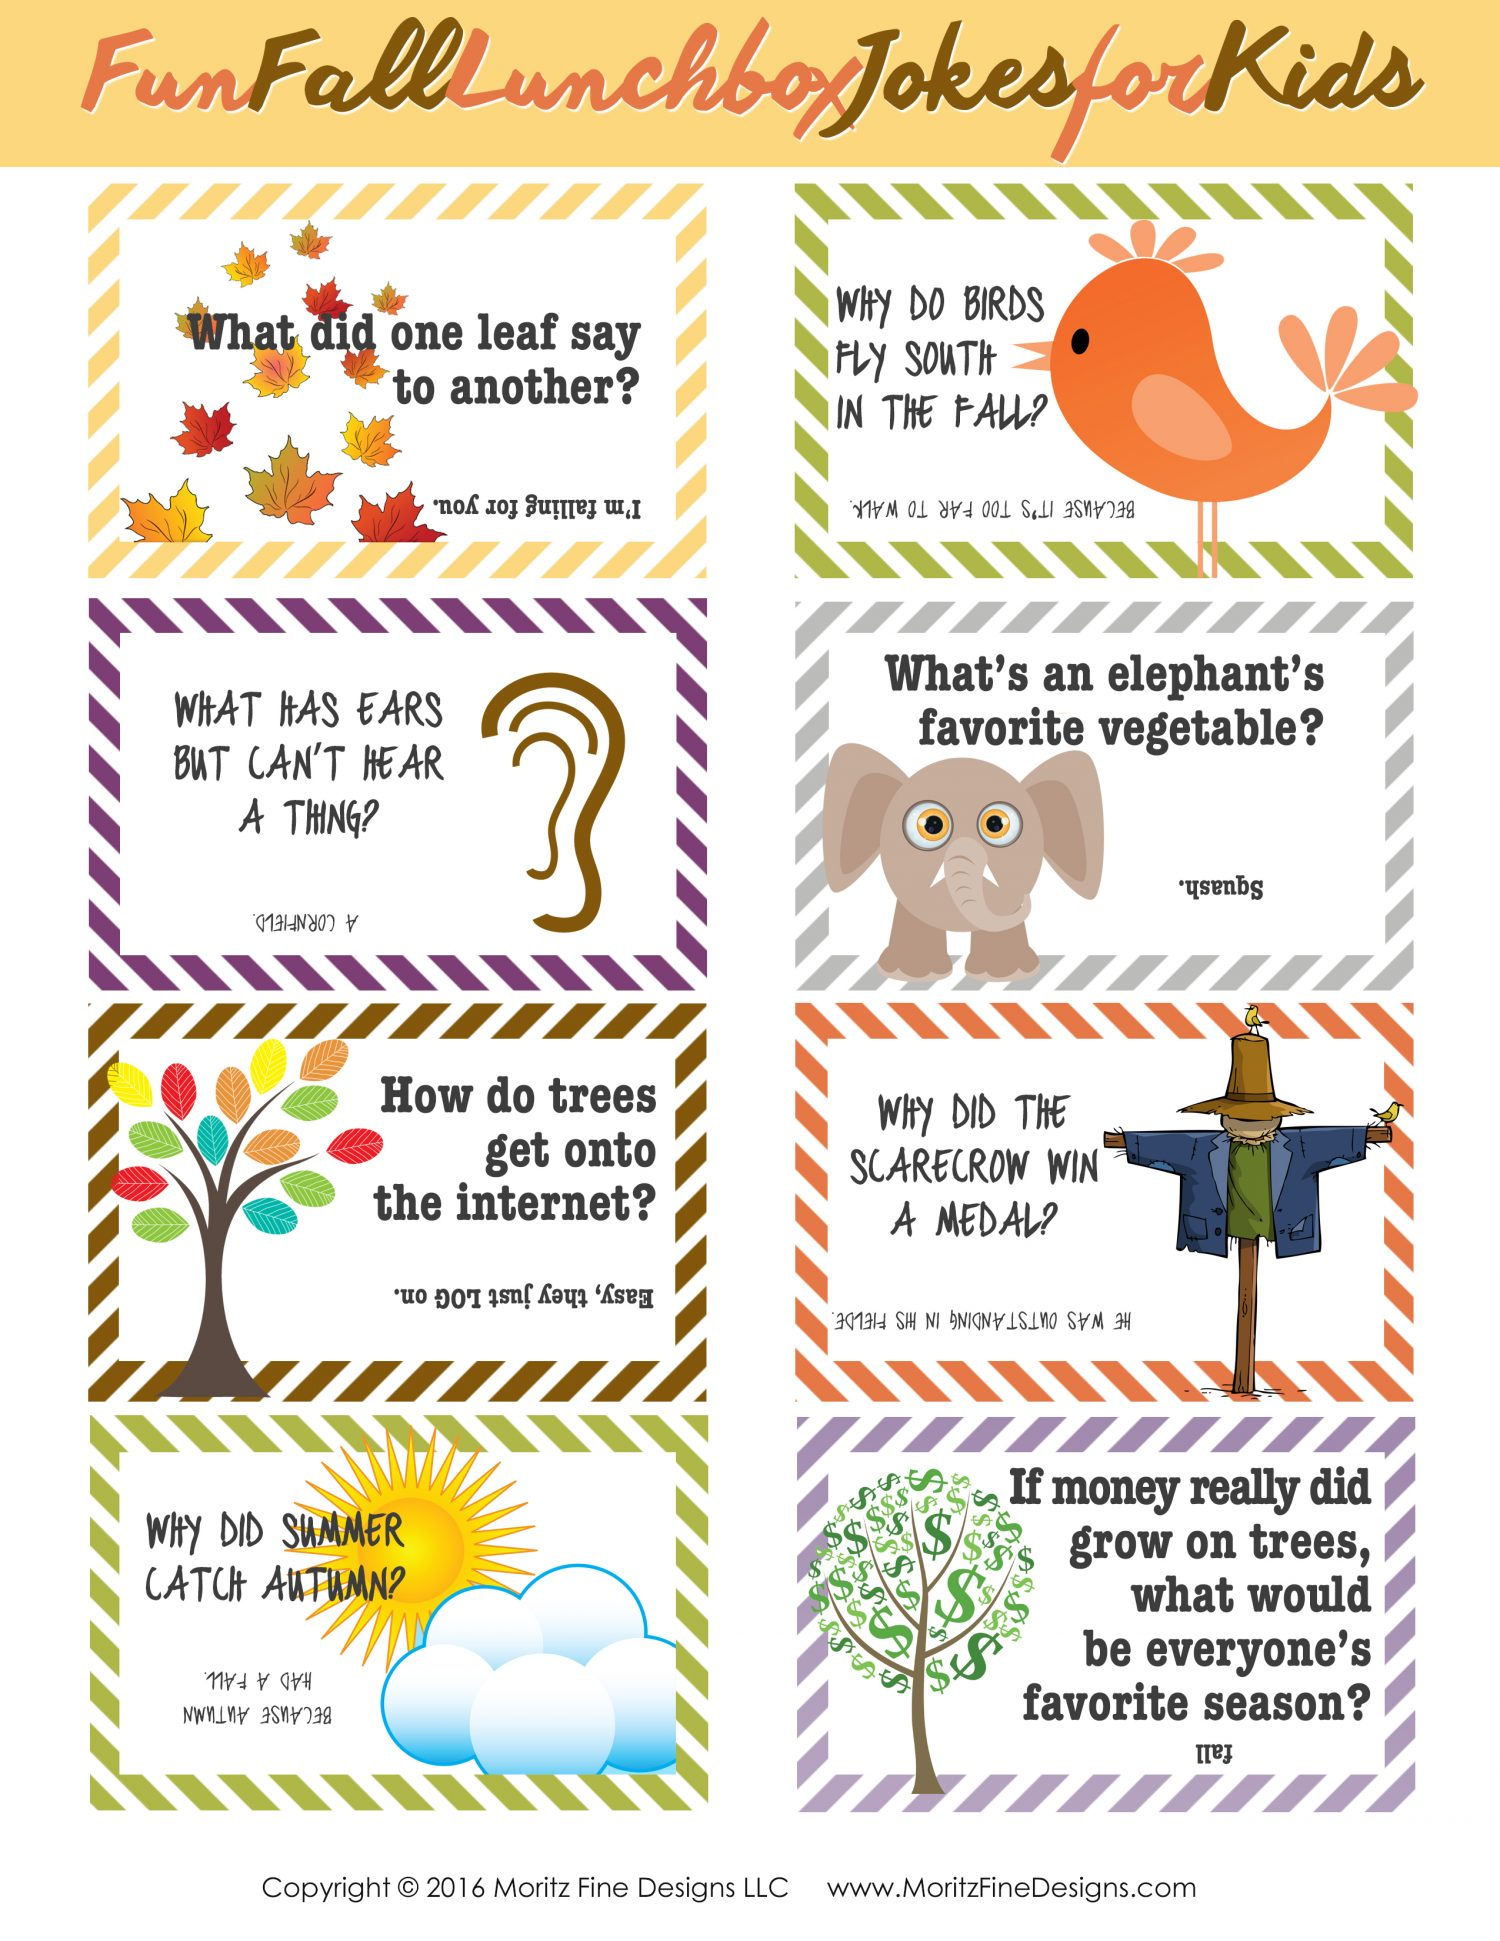 Do your kids need a little laugh at lunch time? Grab these free printable Fall Lunch Box Jokes for Kids and put one in their lunch!